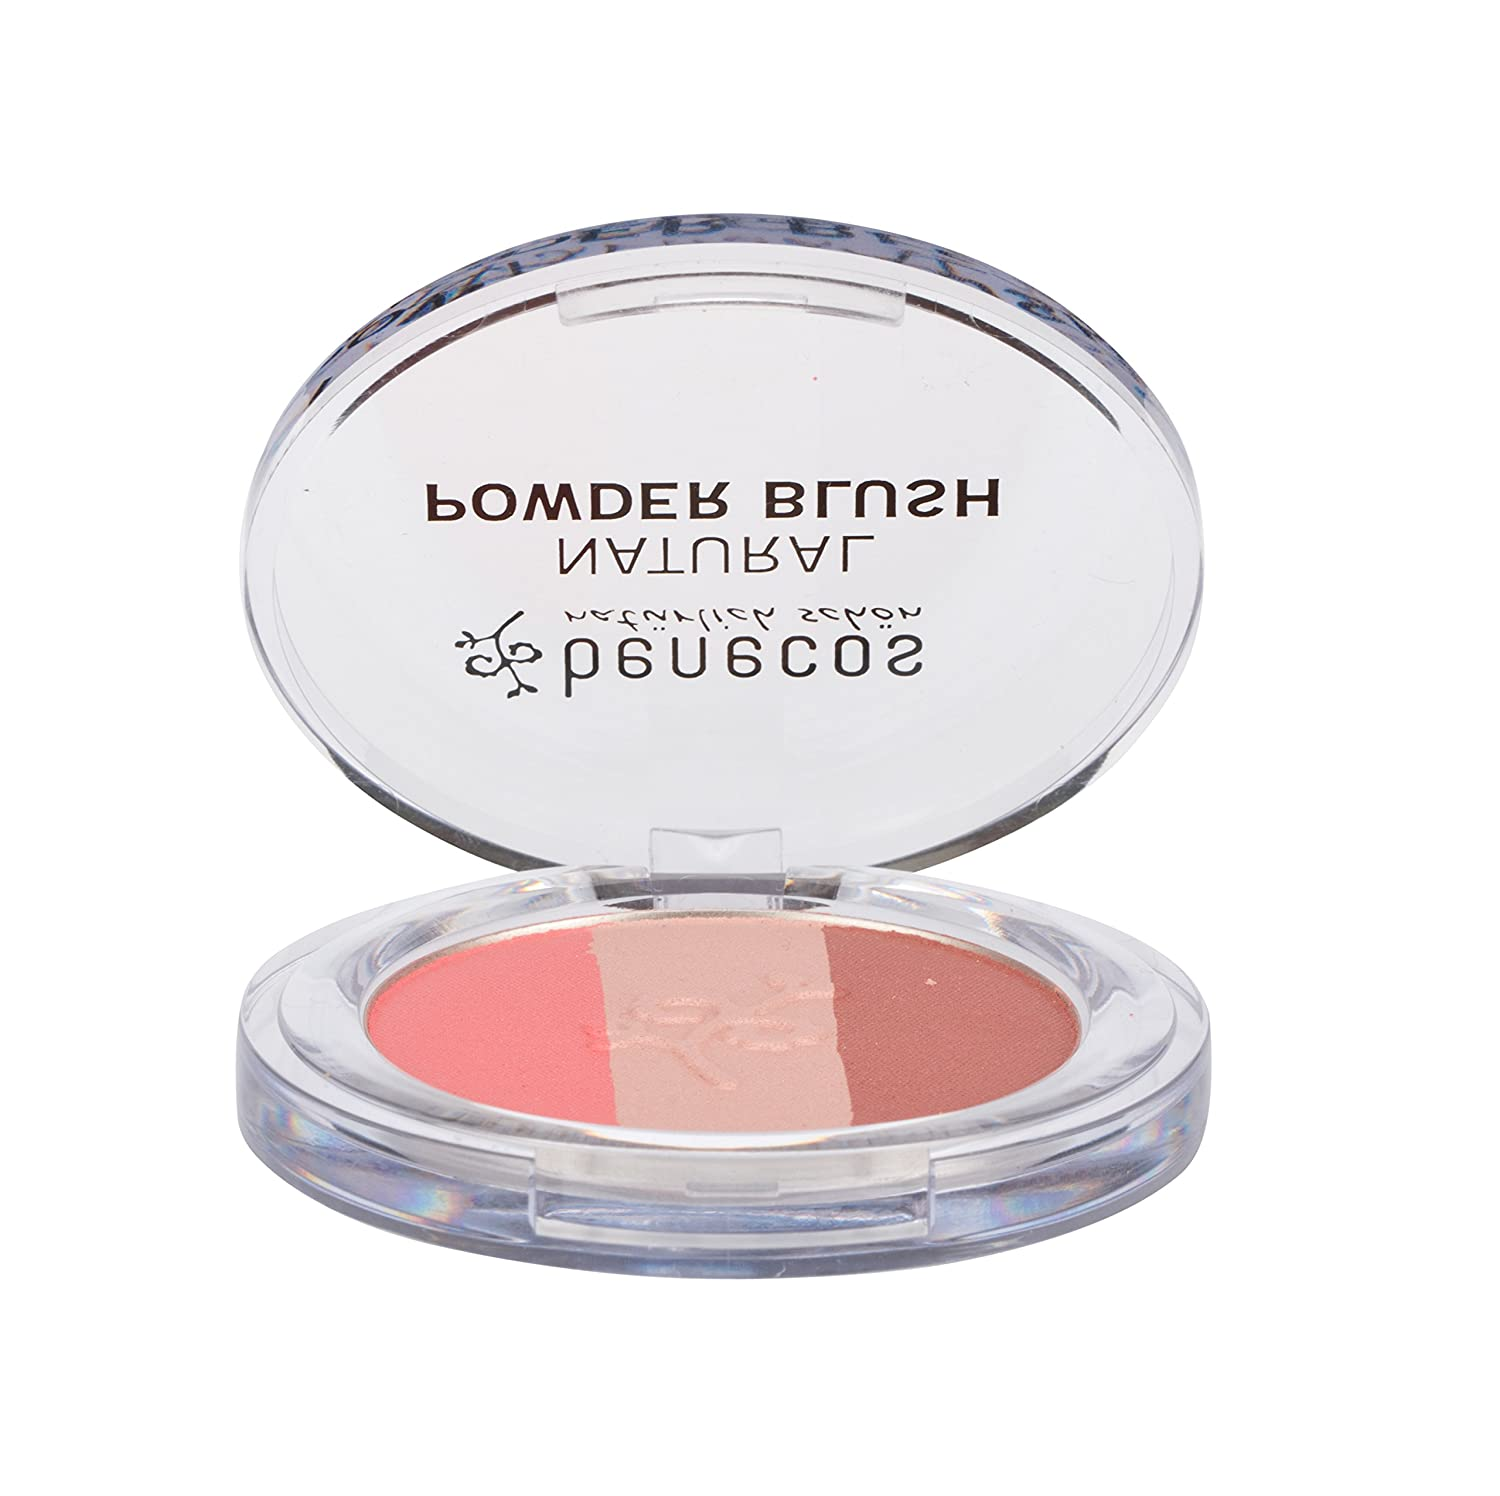 Benecos Natural Trio Blush, Fall In Love Cosmondial GmbH & Co. KG B09148